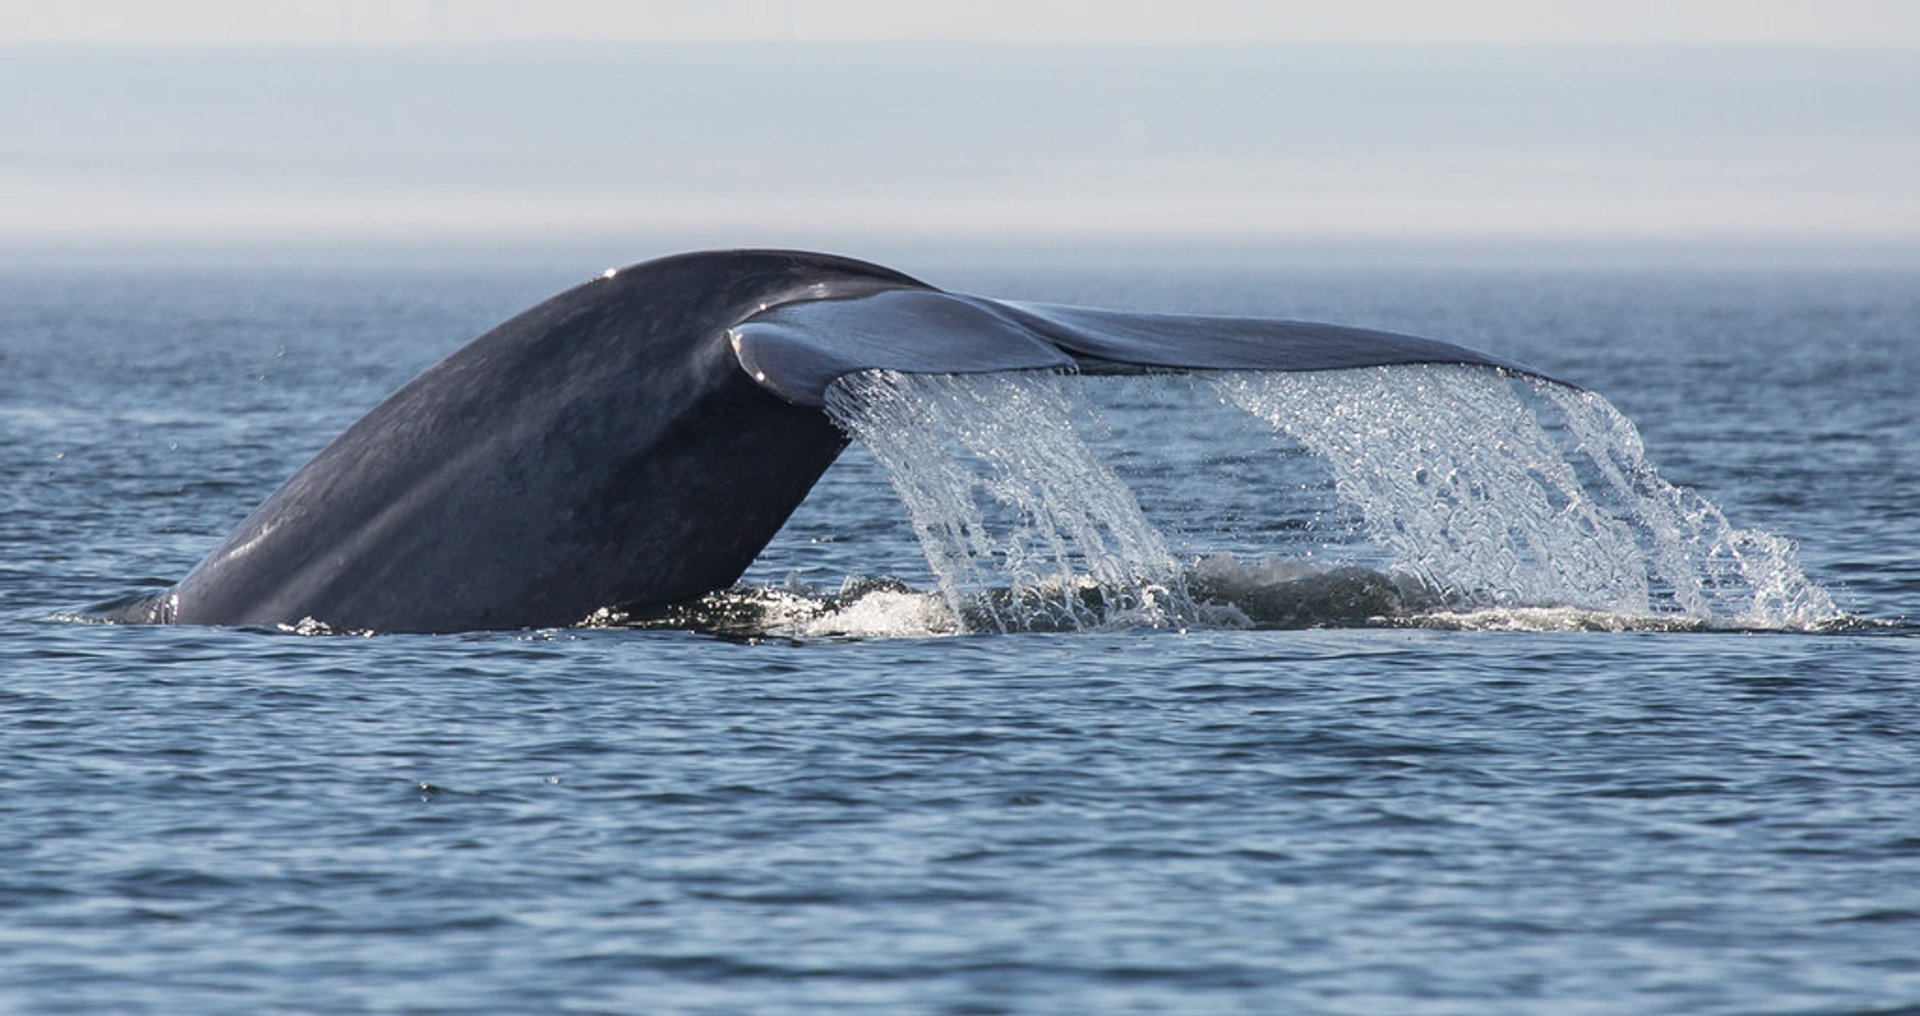 Whale Watching in Quebec 2020 - Best Time